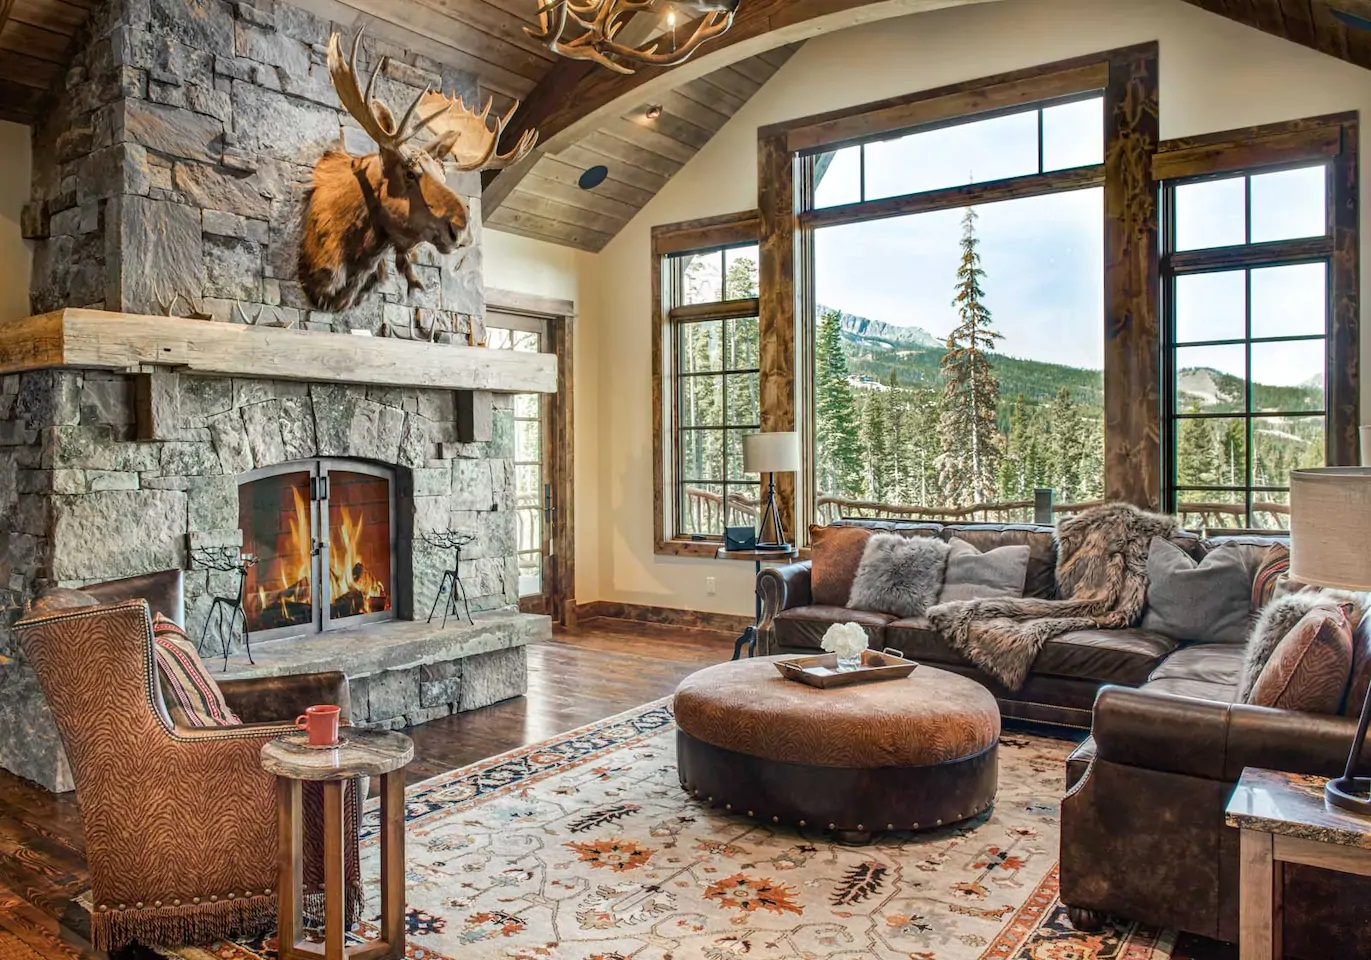 Photo of living room with fireplace inside a mountain chalet Airbnb.